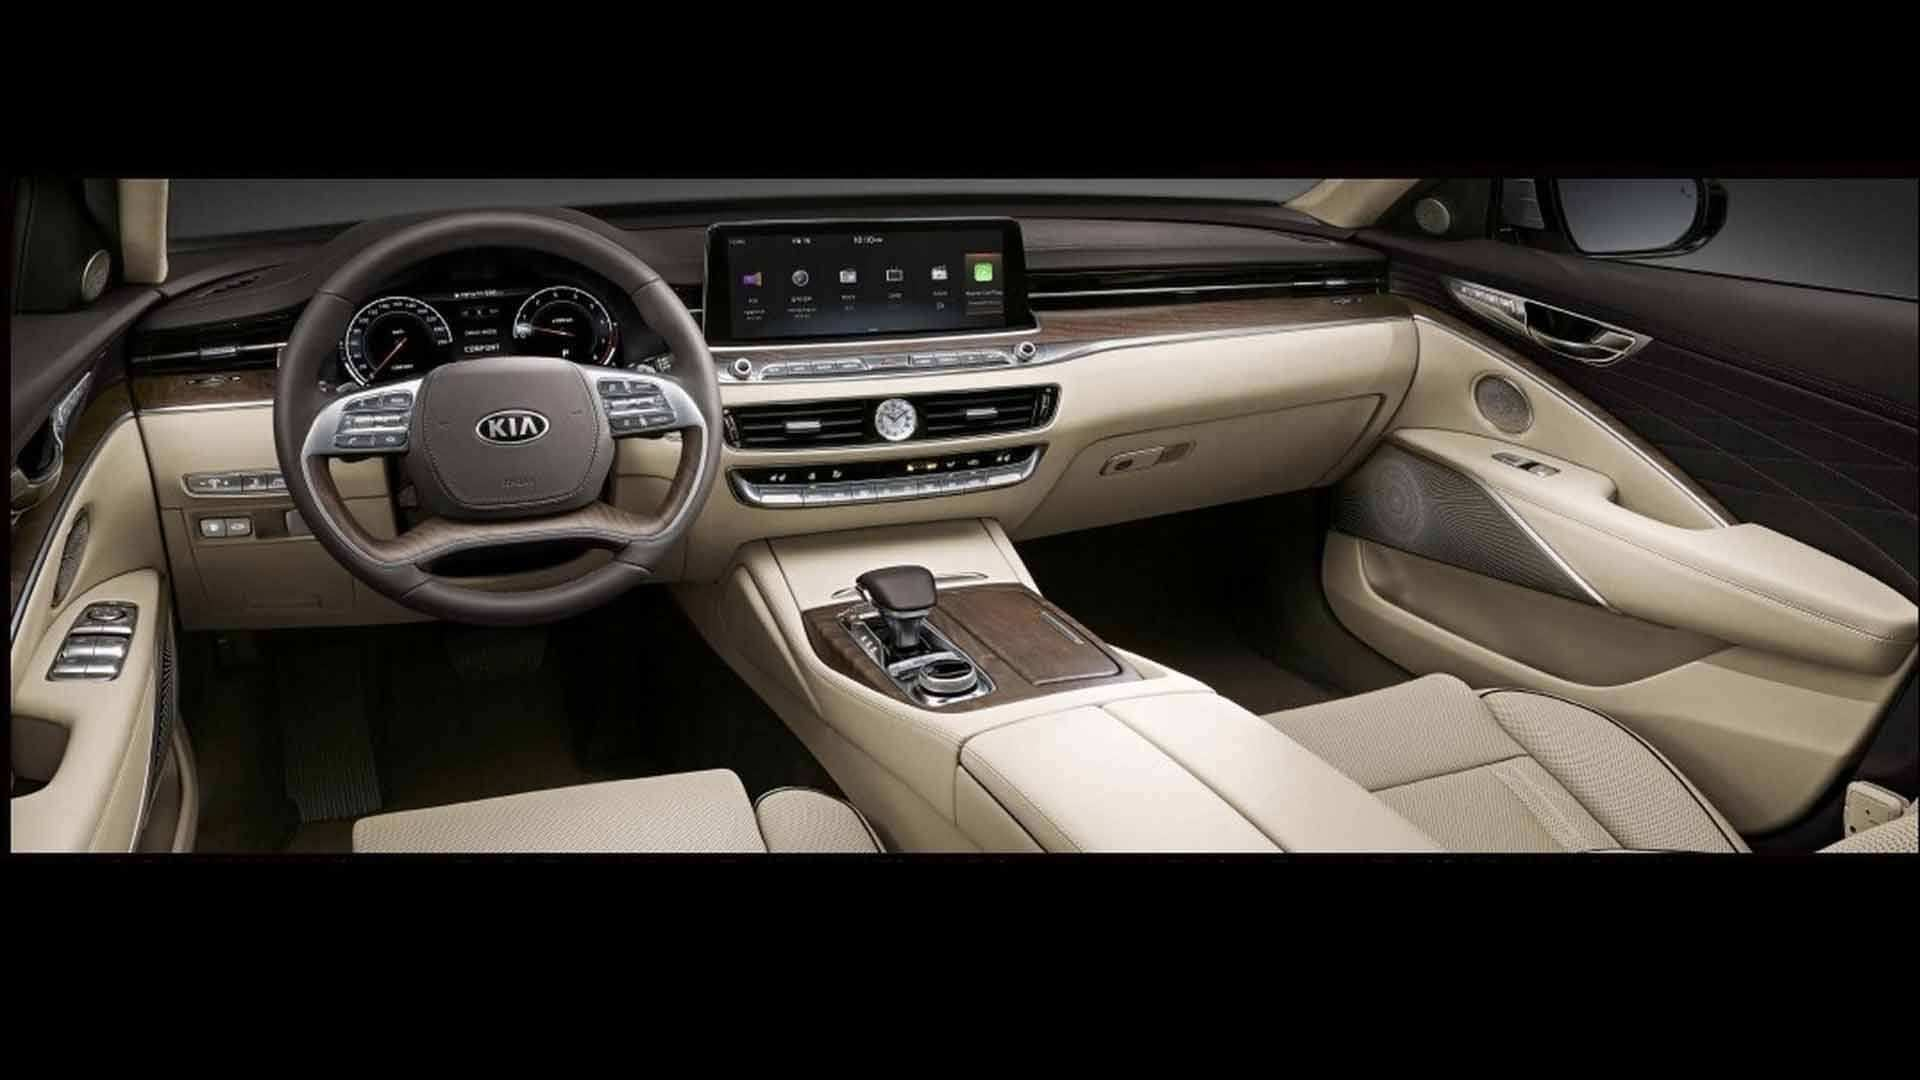 15 Concept of New Kia Quoris 2019 Specs First Drive Research New with New Kia Quoris 2019 Specs First Drive